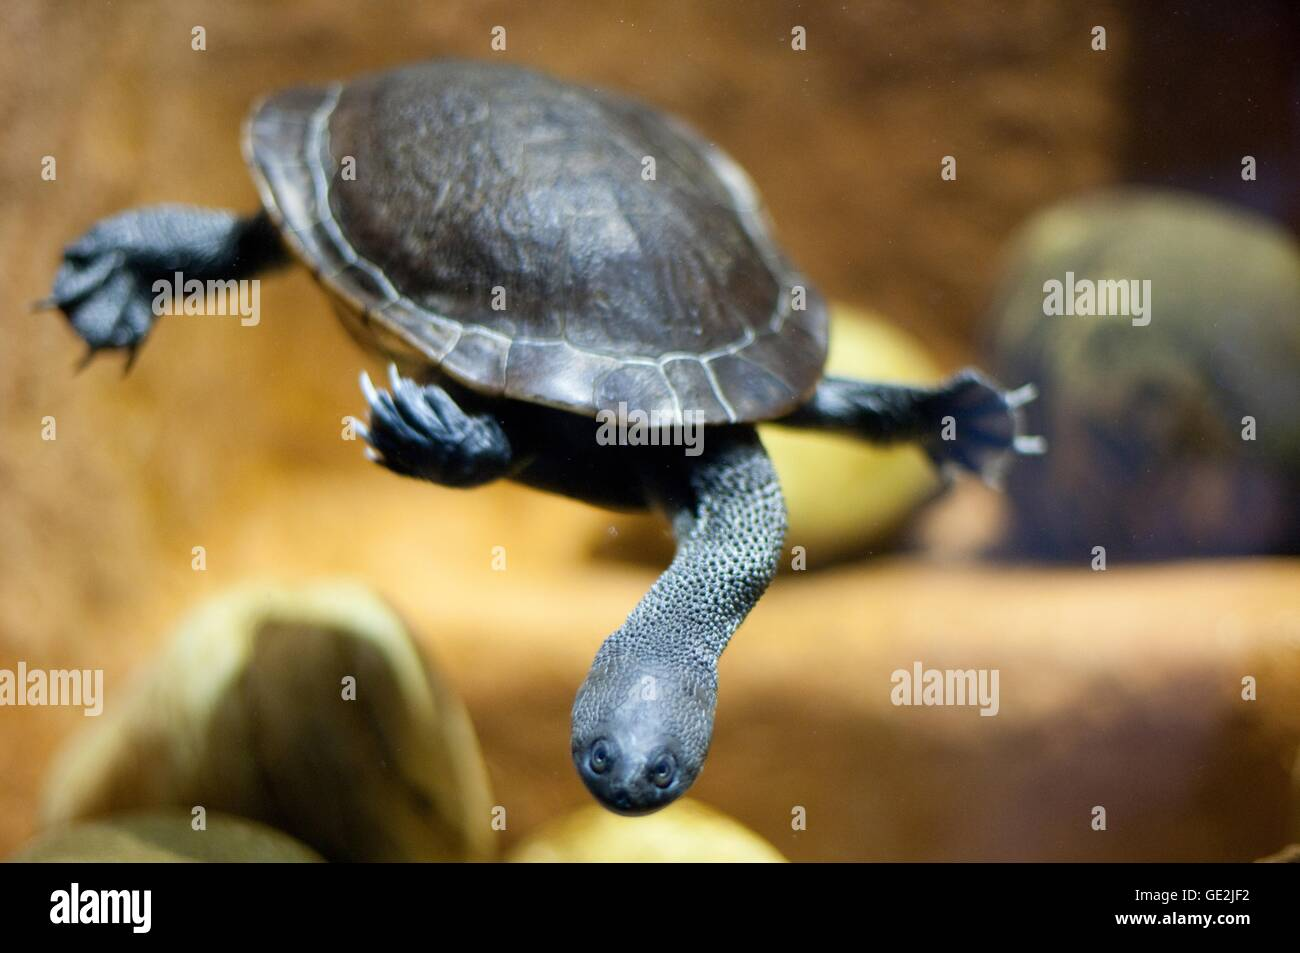 snake-necked turtle - Stock Image